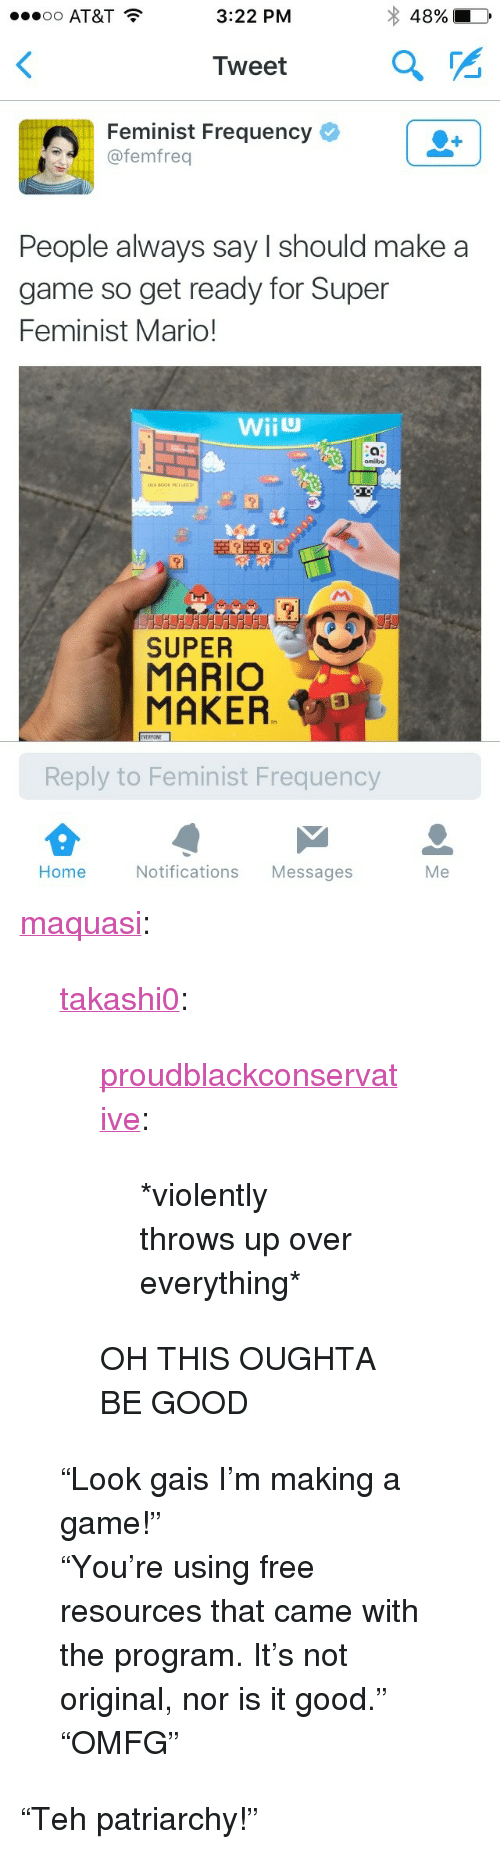 "mario maker: oo AT&T  3:22 PM  48%  Tweet  Feminist Frequency  @femfreq  People always say I should make a  game so get ready for Super  Feminist Mario!  omiibo  CLUDED  SUPER  MARIO  MAKER  EVERYONE  Reply to Feminist Frequency  Home  Notifications Messages  Me <p><a href=""http://maquasi.tumblr.com/post/129303357997/takashi0-proudblackconservative-violently"" class=""tumblr_blog"">maquasi</a>:</p>  <blockquote><p><a href=""http://takashi0.tumblr.com/post/129297946702"">takashi0</a>:</p><blockquote><p><a href=""http://proudblackconservative.tumblr.com/post/129297915409"">proudblackconservative</a>:</p><blockquote><p>*violently throws up over everything*</p></blockquote><p>OH THIS OUGHTA BE GOOD</p></blockquote><p>""Look gais I'm making a game!""<br/></p><p>""You're using free resources that came with the program. It's not original, nor is it good.""<br/></p><p>""OMFG""<br/></p></blockquote>  <p>&ldquo;Teh patriarchy!&rdquo;</p>"